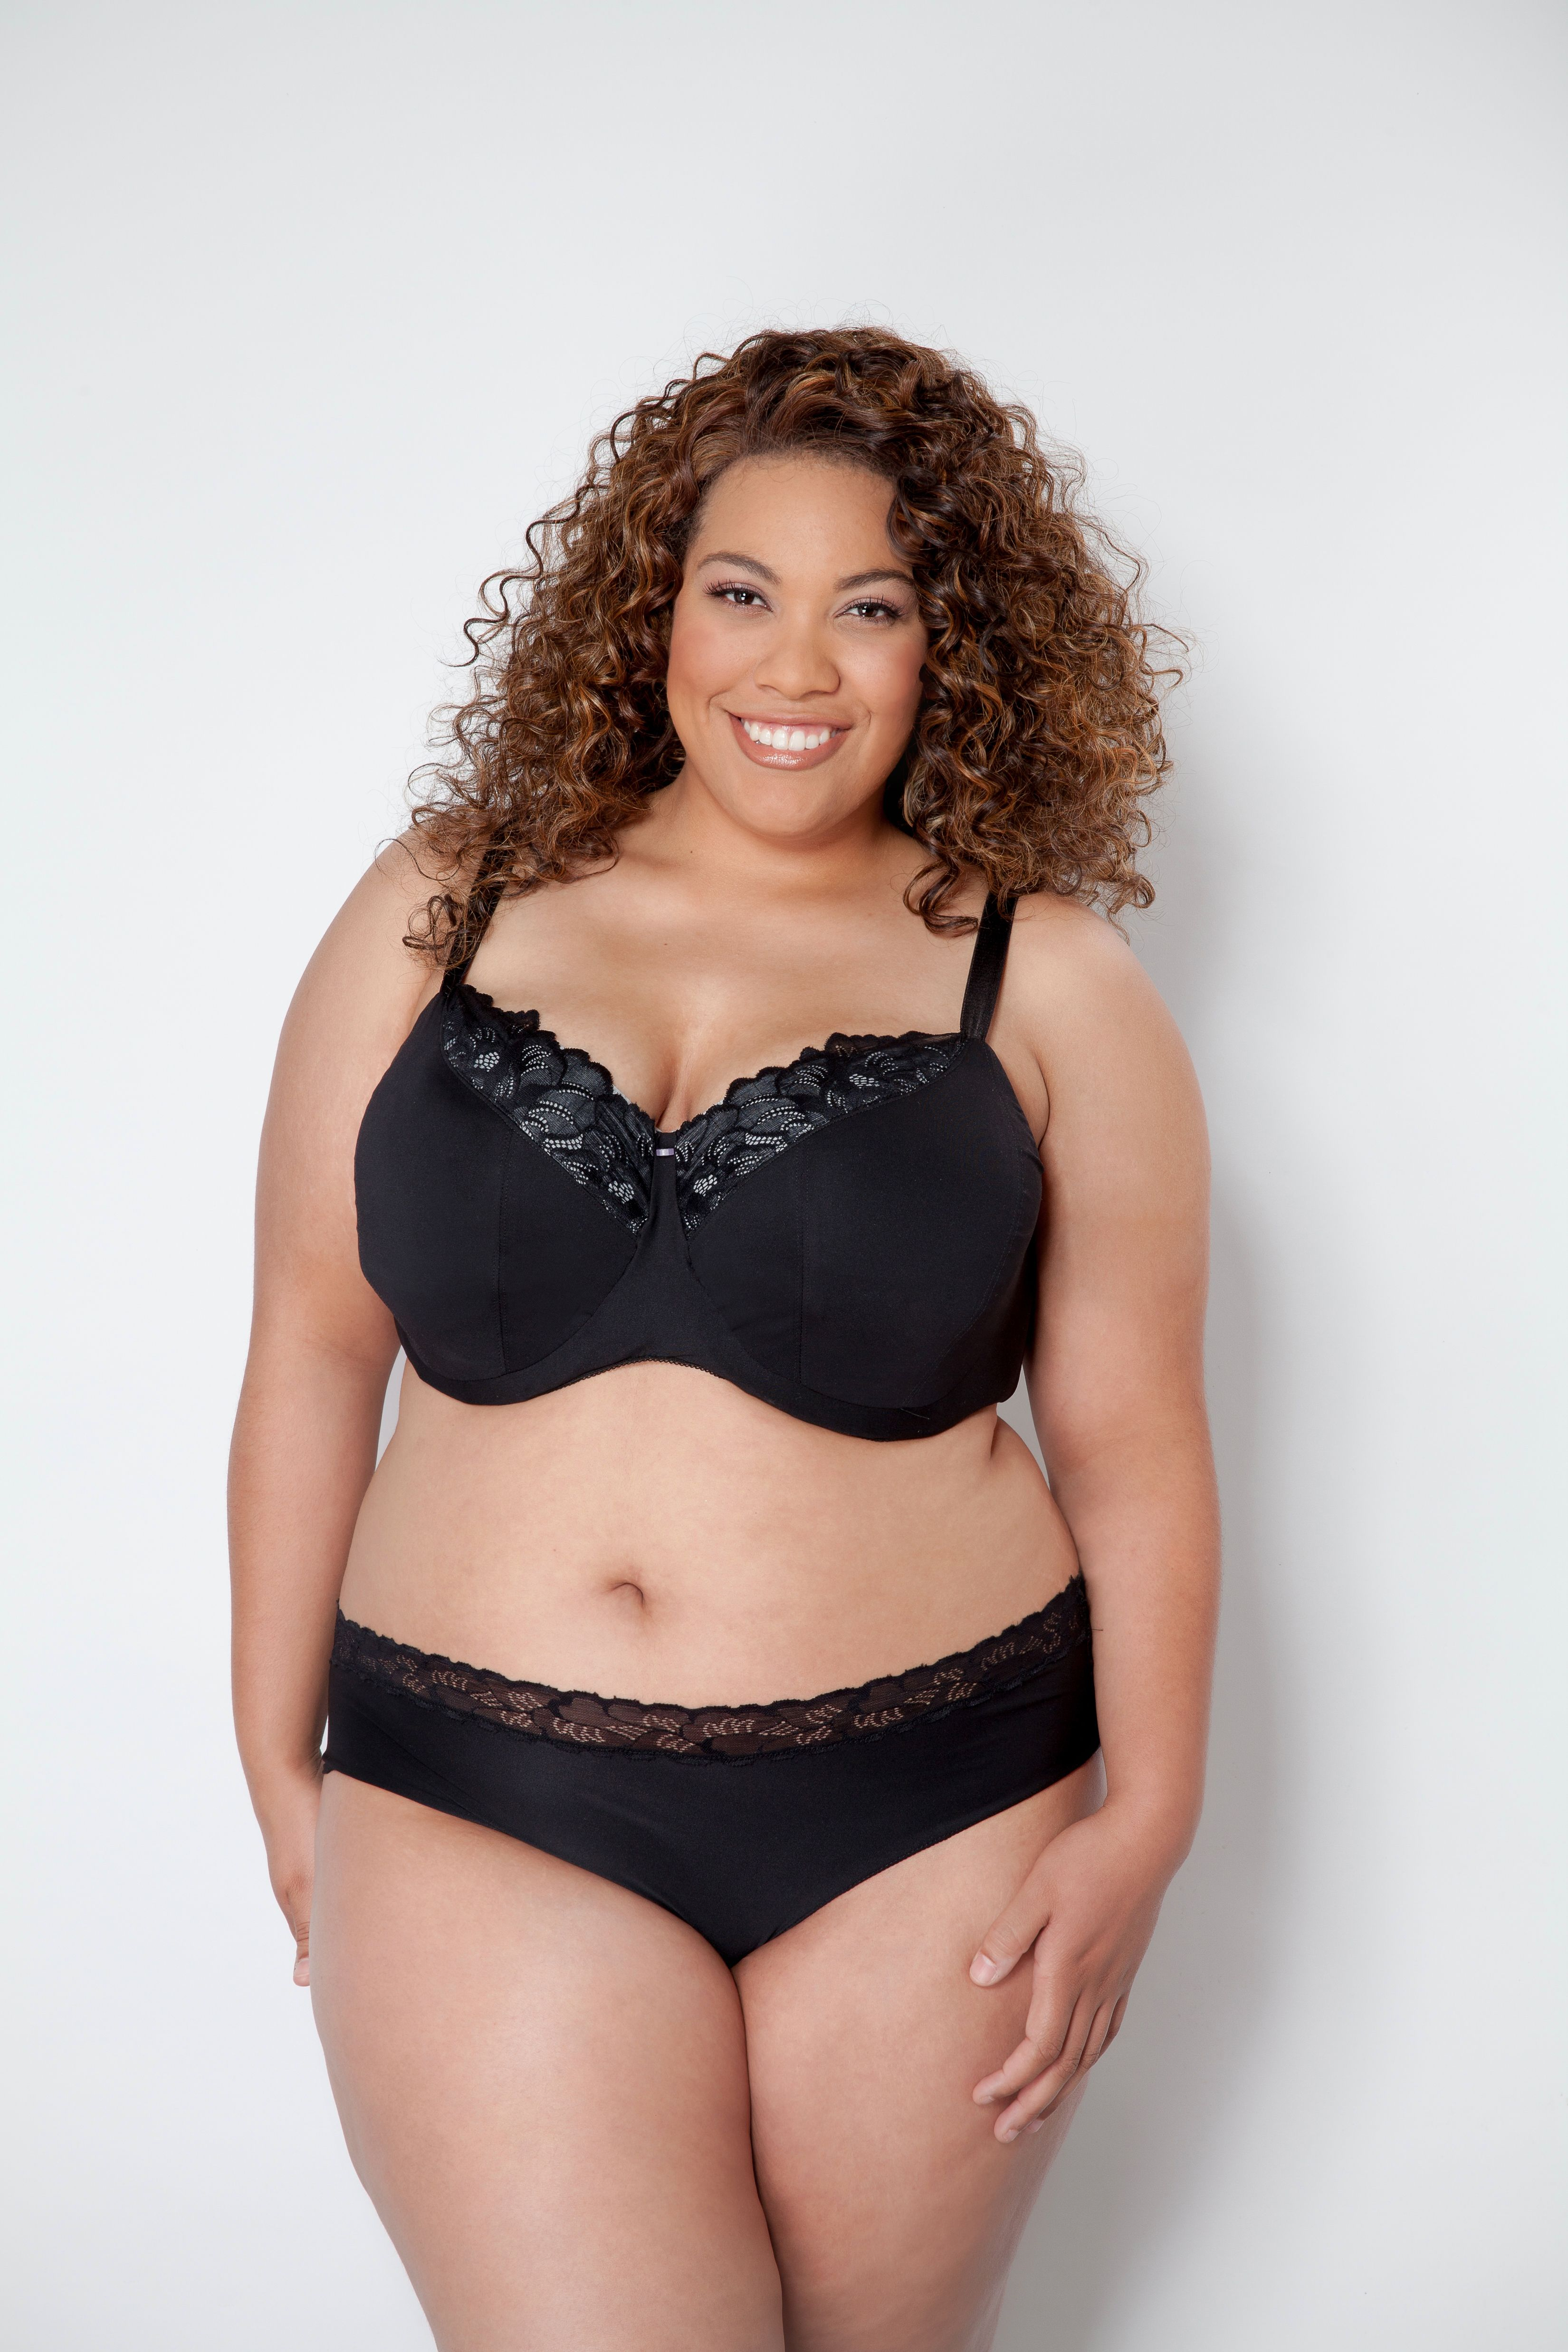 Plus-Size Lingerie Tips From People Who Get the Big-Boob Situ Plus-Size Lingerie Tips From People Who Get the Big-Boob Situ new foto